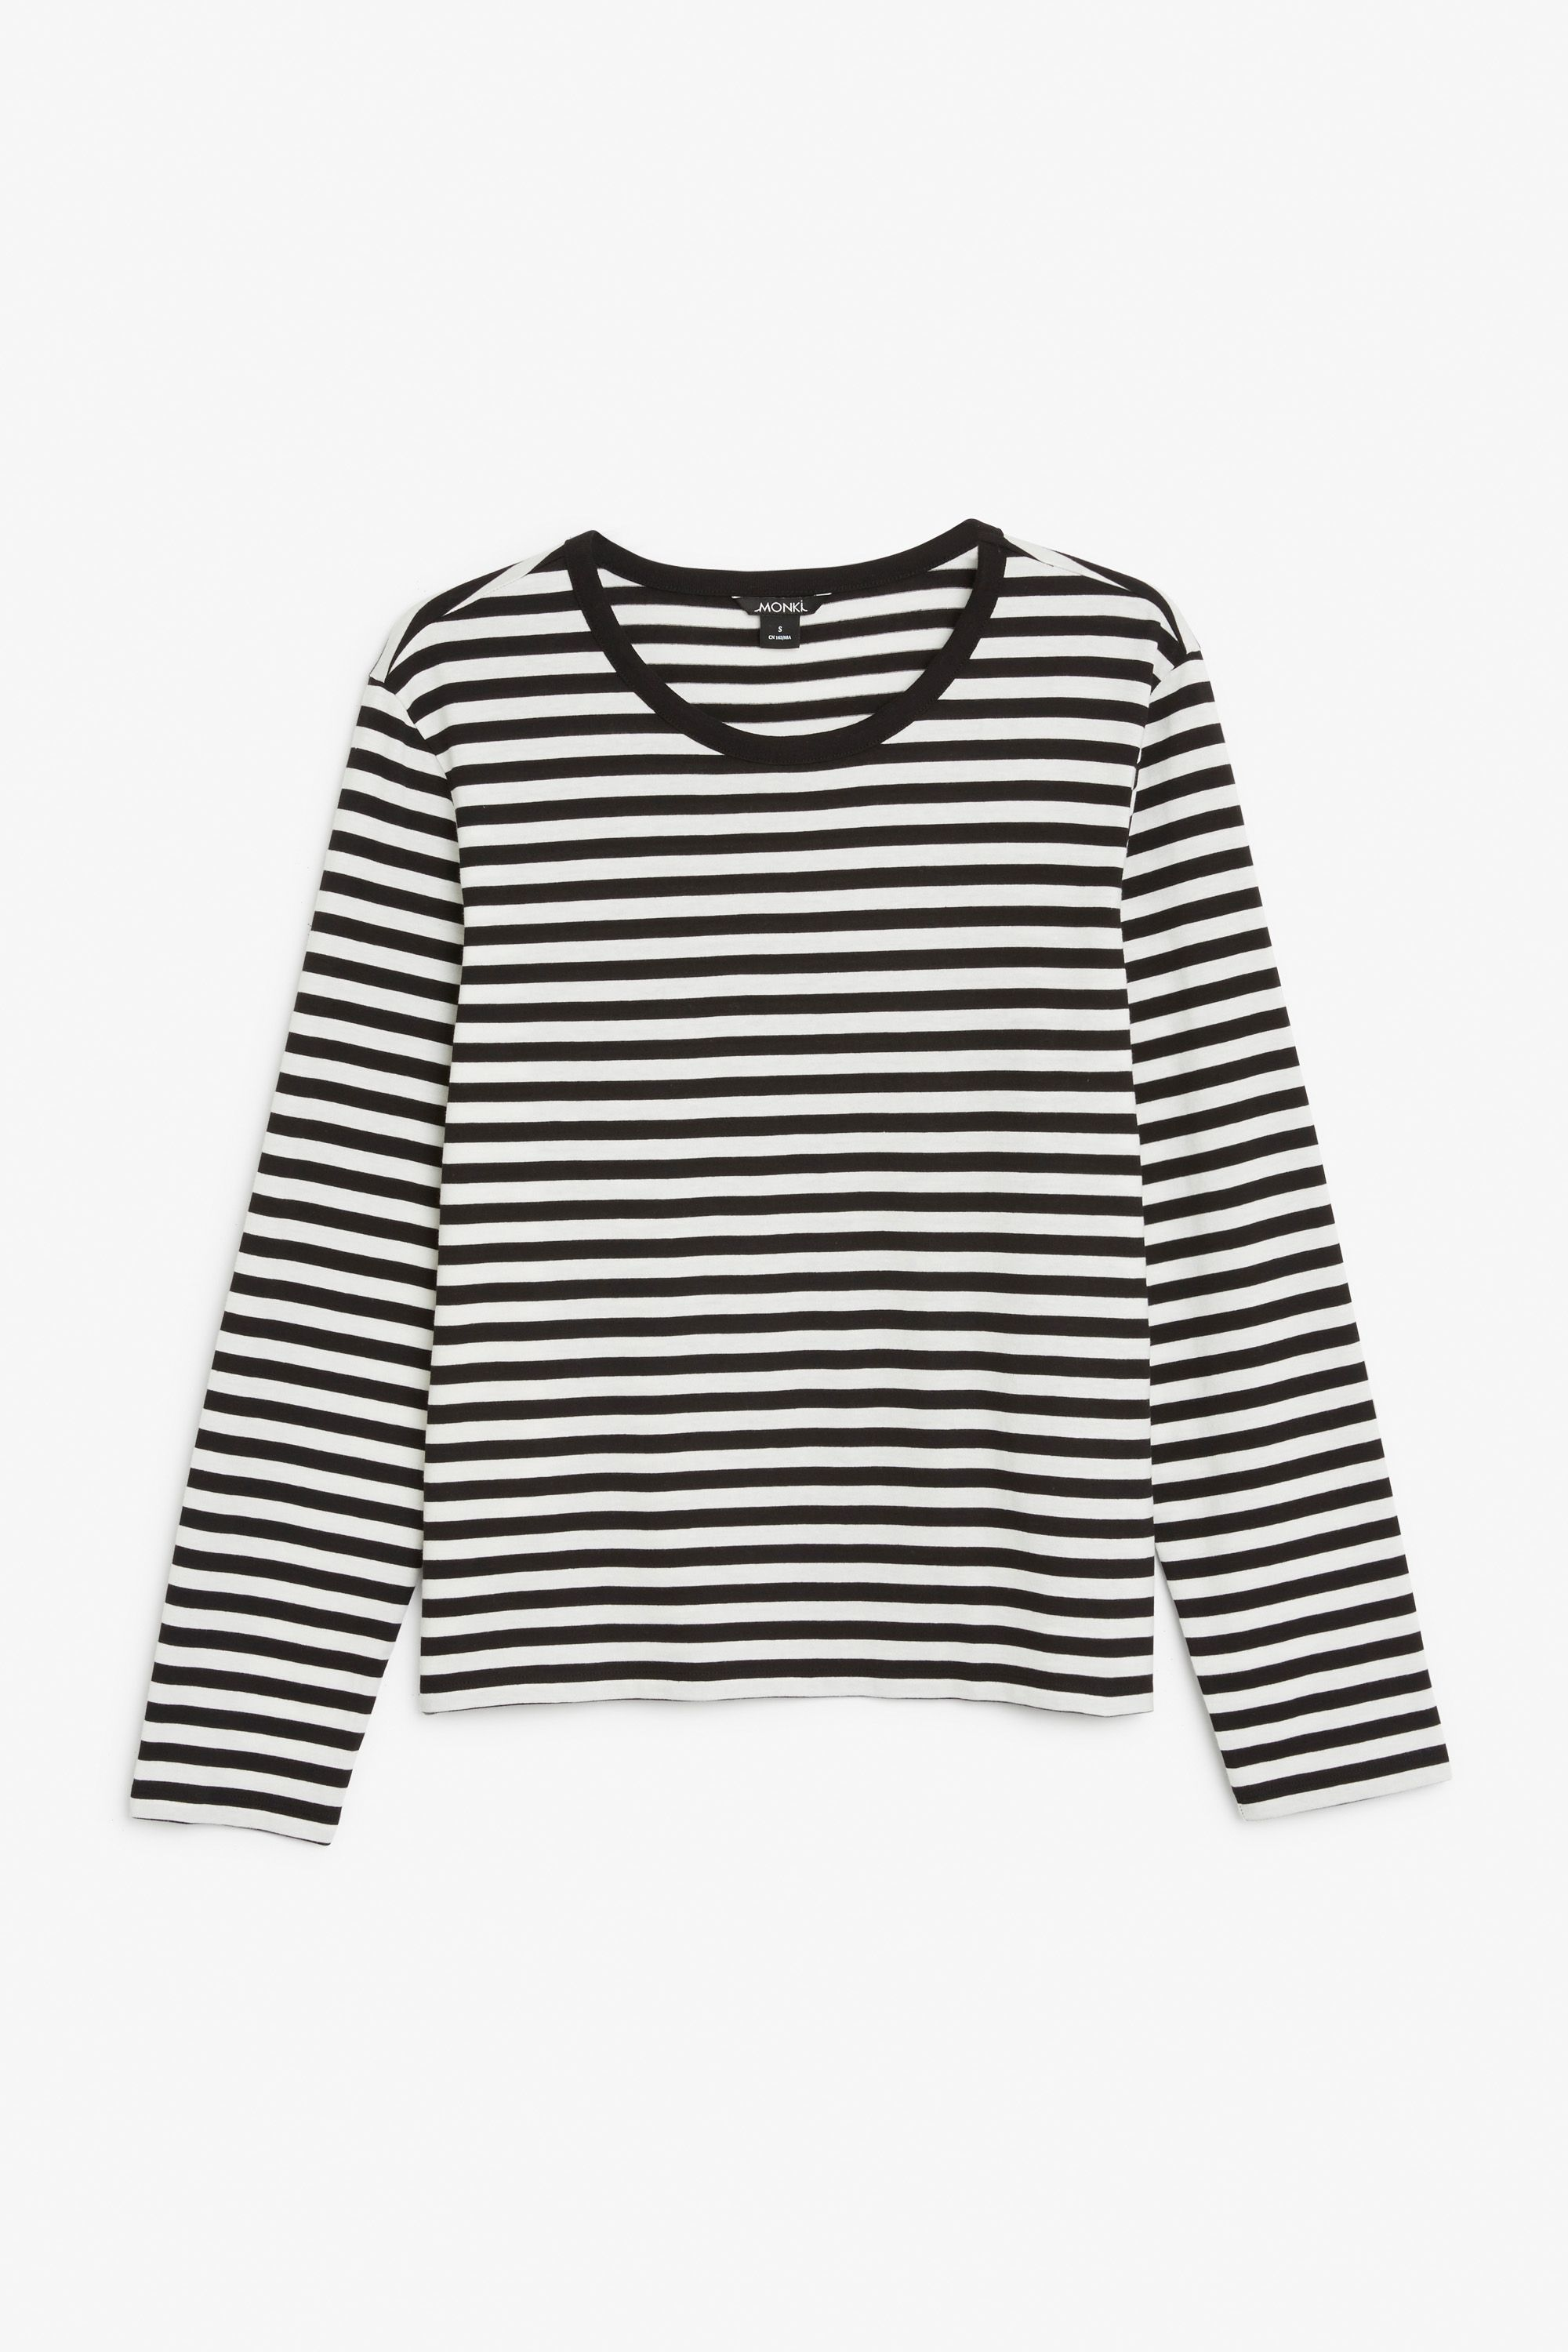 Monki Image 1 of Soft long-sleeved top in Black